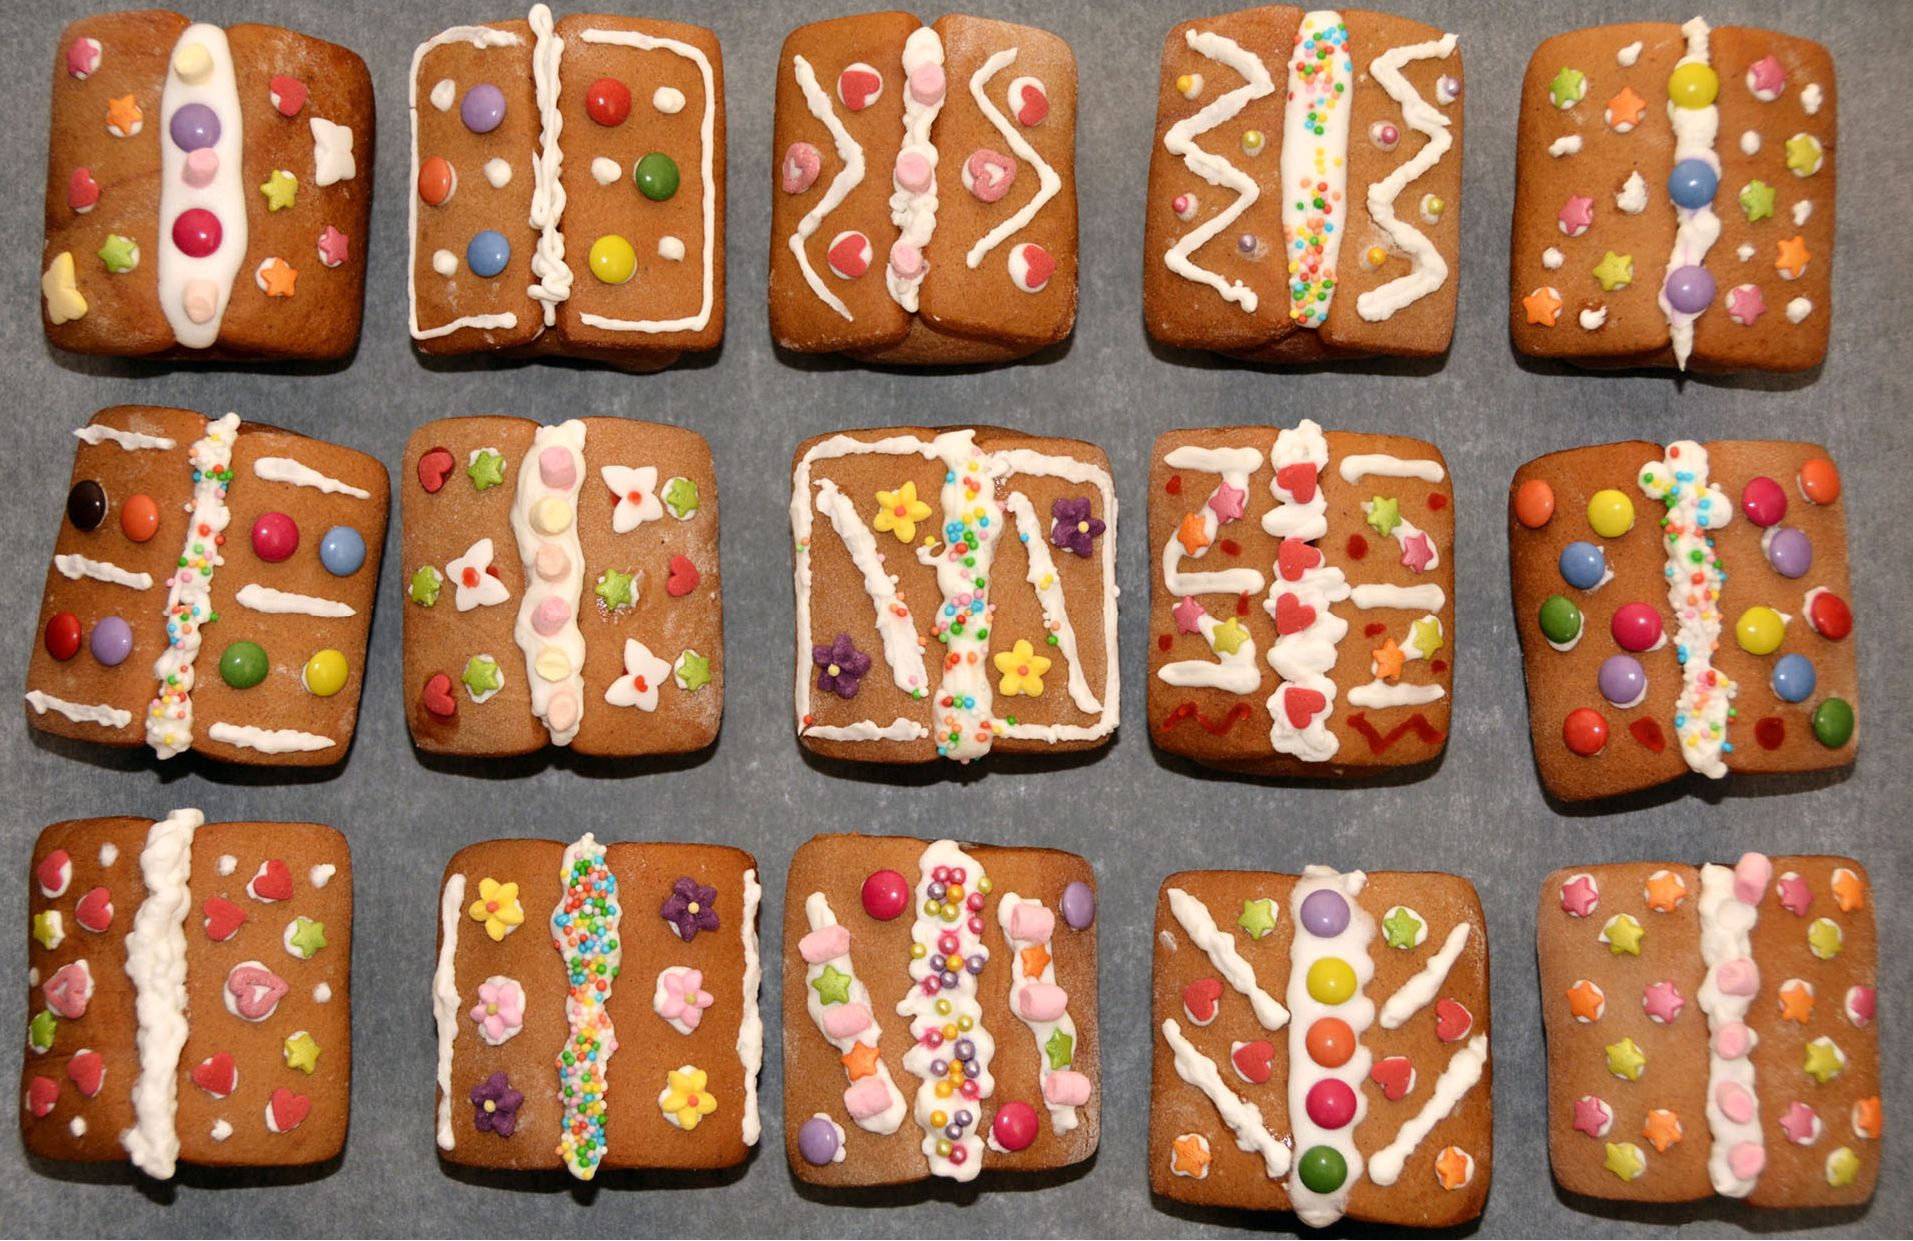 15th Annual Gingerbread Project